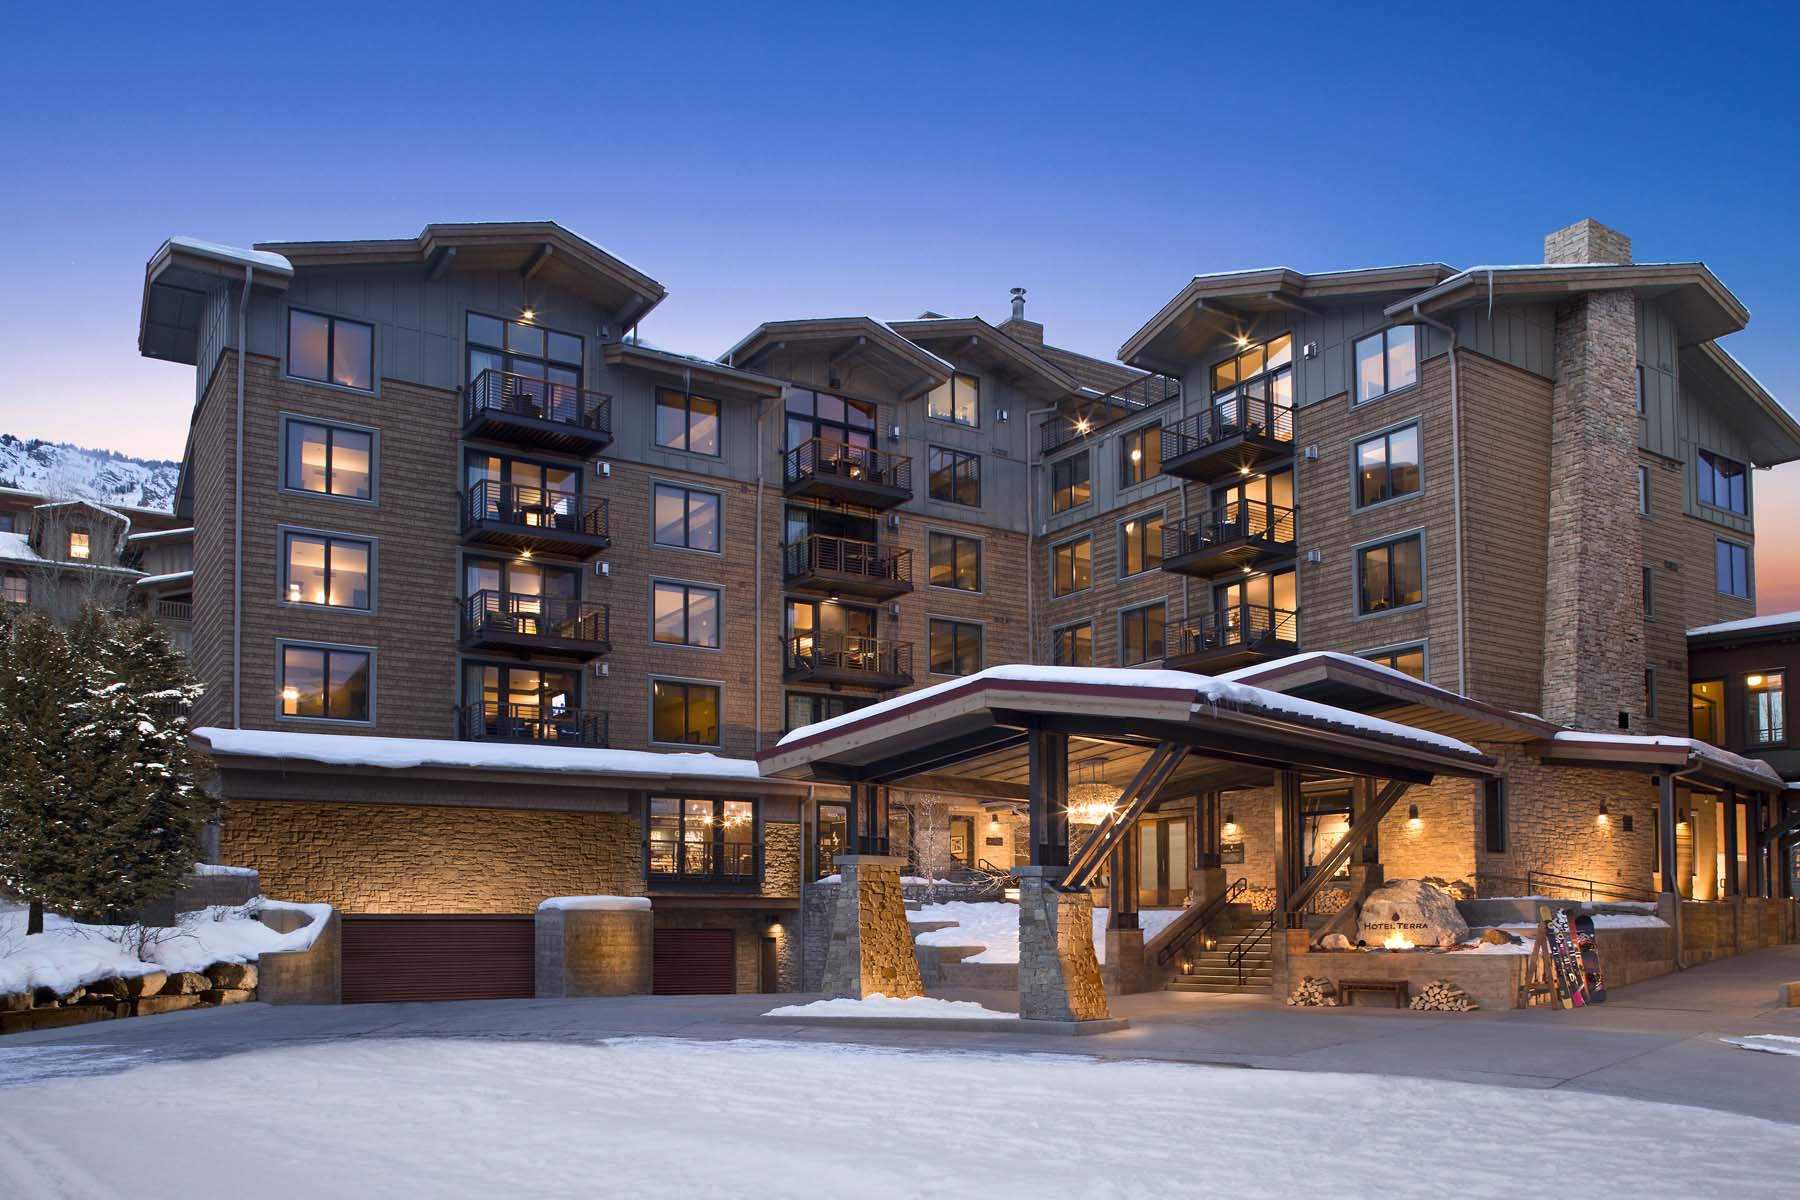 Copropriété pour l Vente à Slopeside 3 bedroom/4 bath condo 3325 W. Village Drive Unit 267, Teton Village, Wyoming, 83025 Jackson Hole, États-Unis